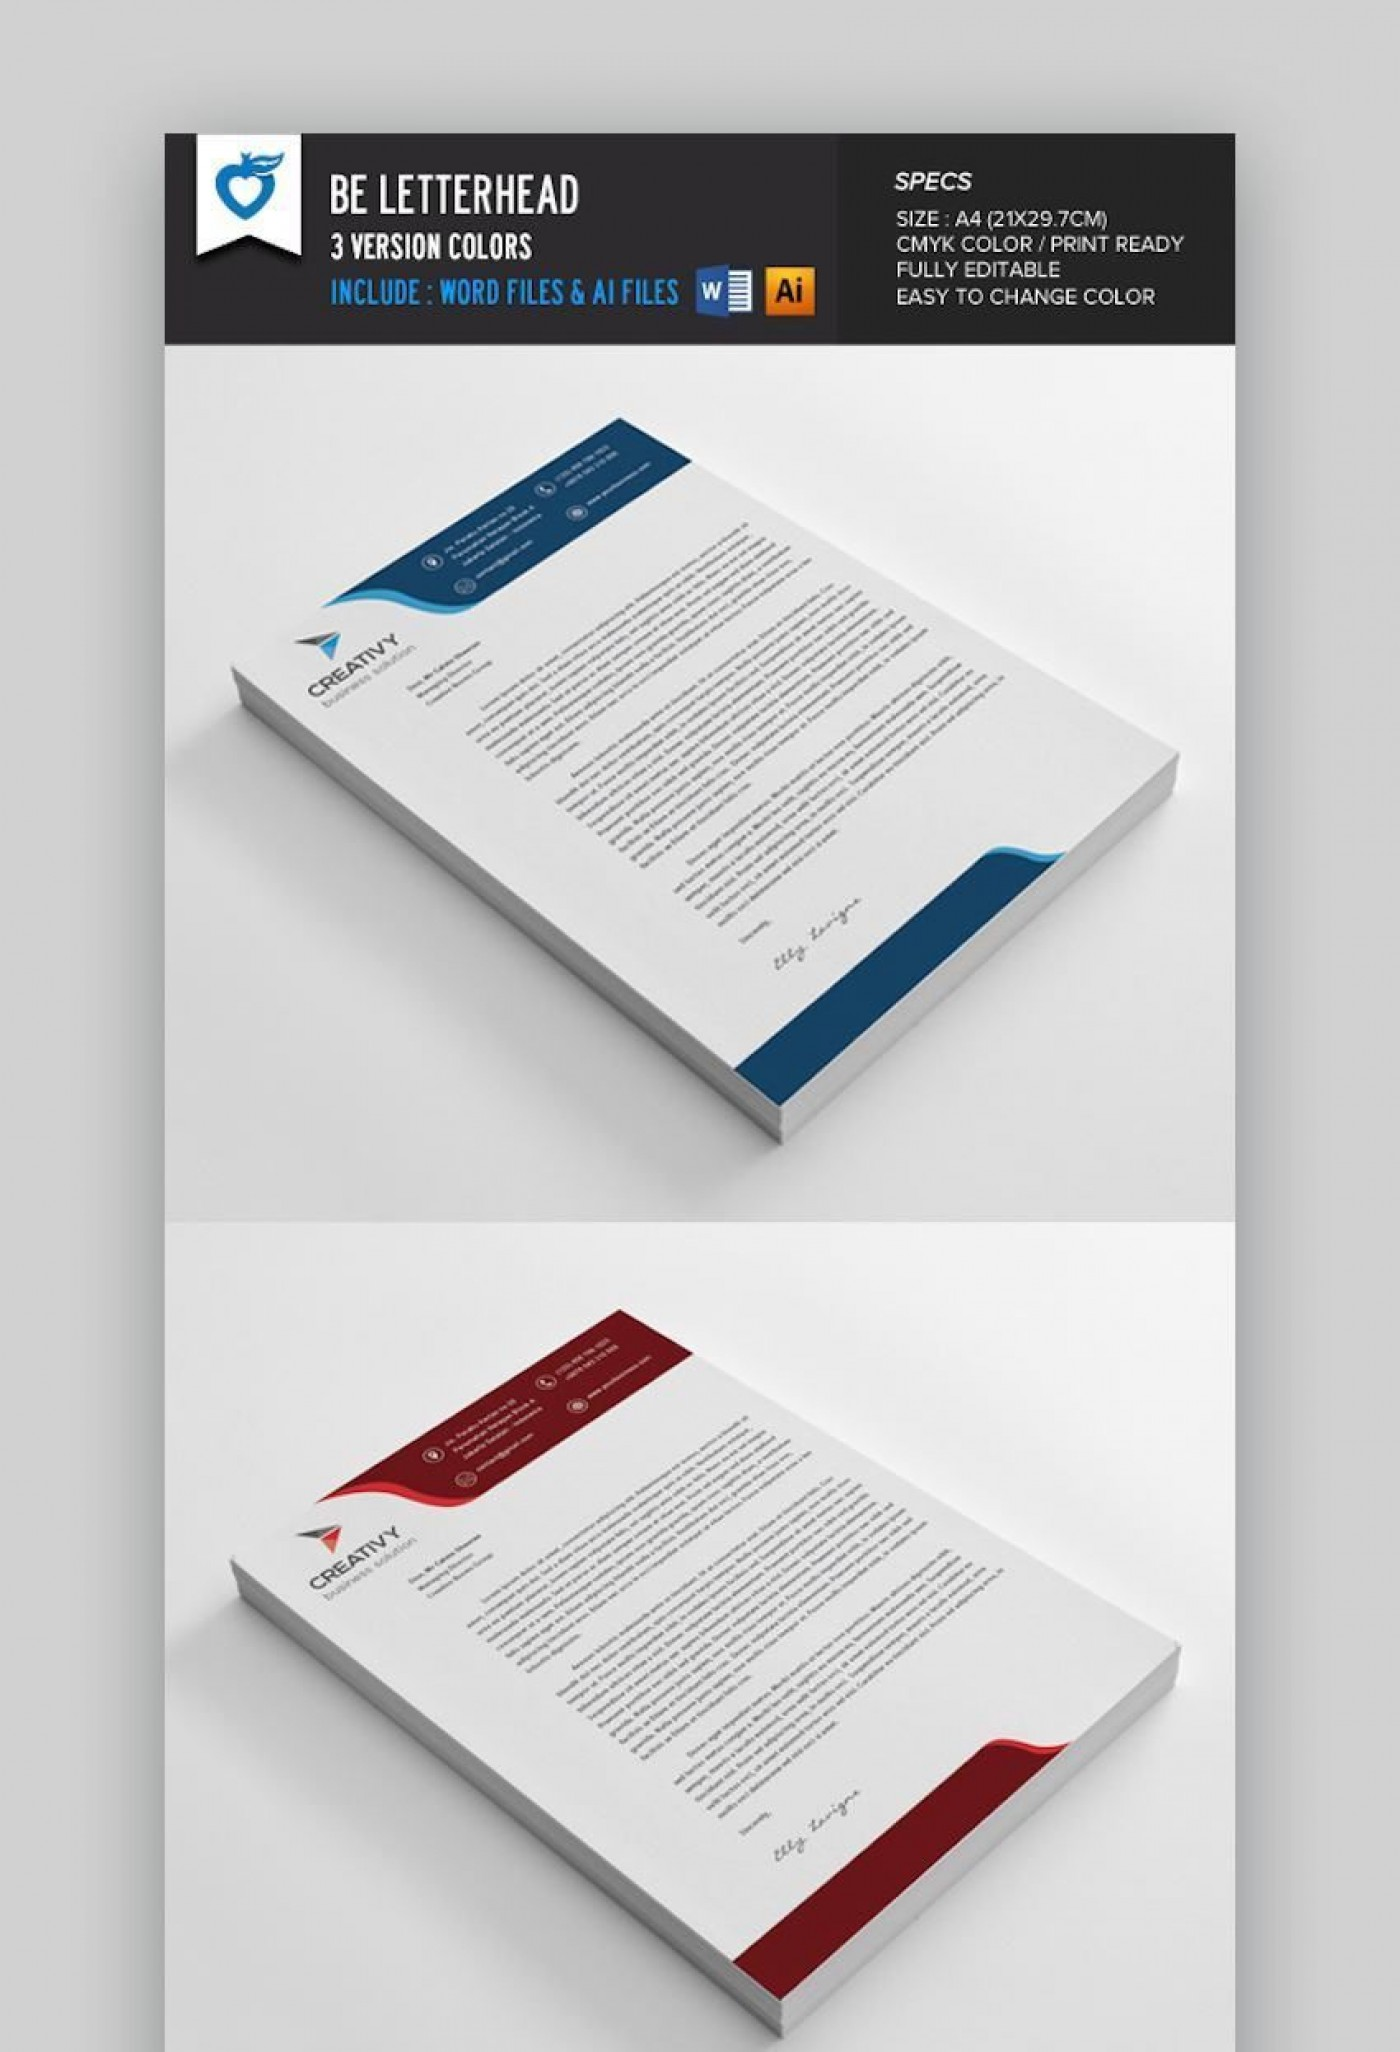 006 Staggering Letterhead Template Free Download Doc Image  Company Format1400